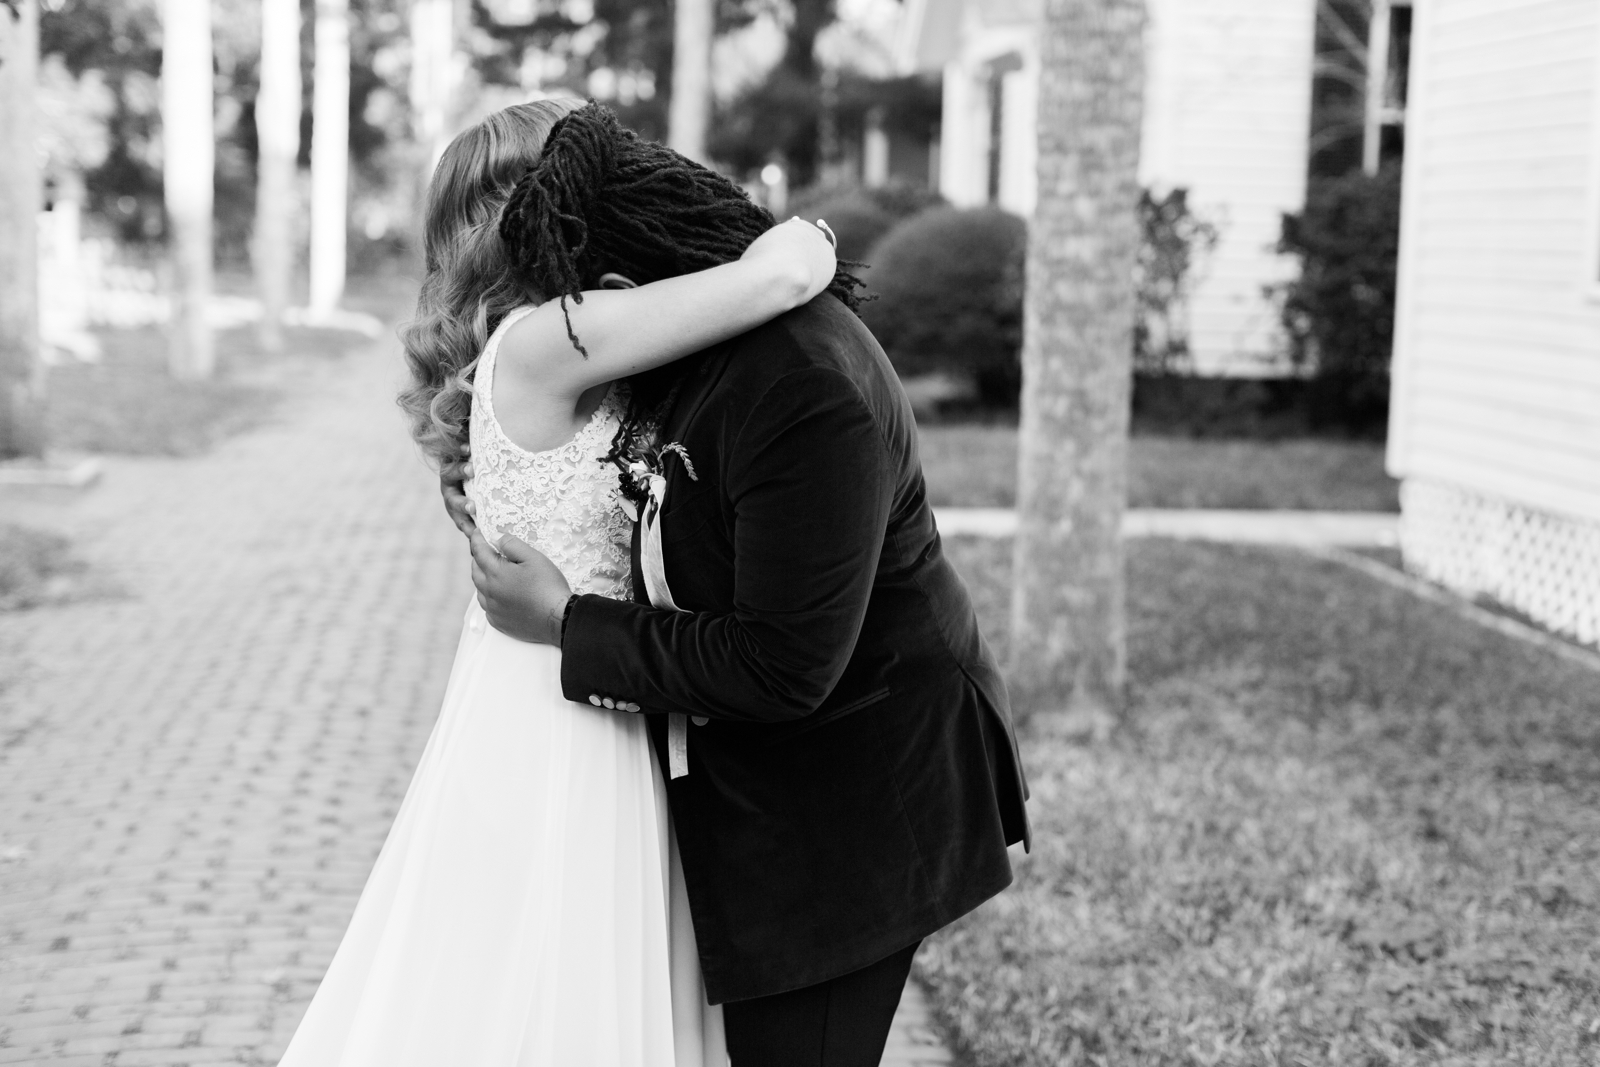 lightner_museum_st_augustine_wedding_photographer_shannon_griffin_0034.jpg